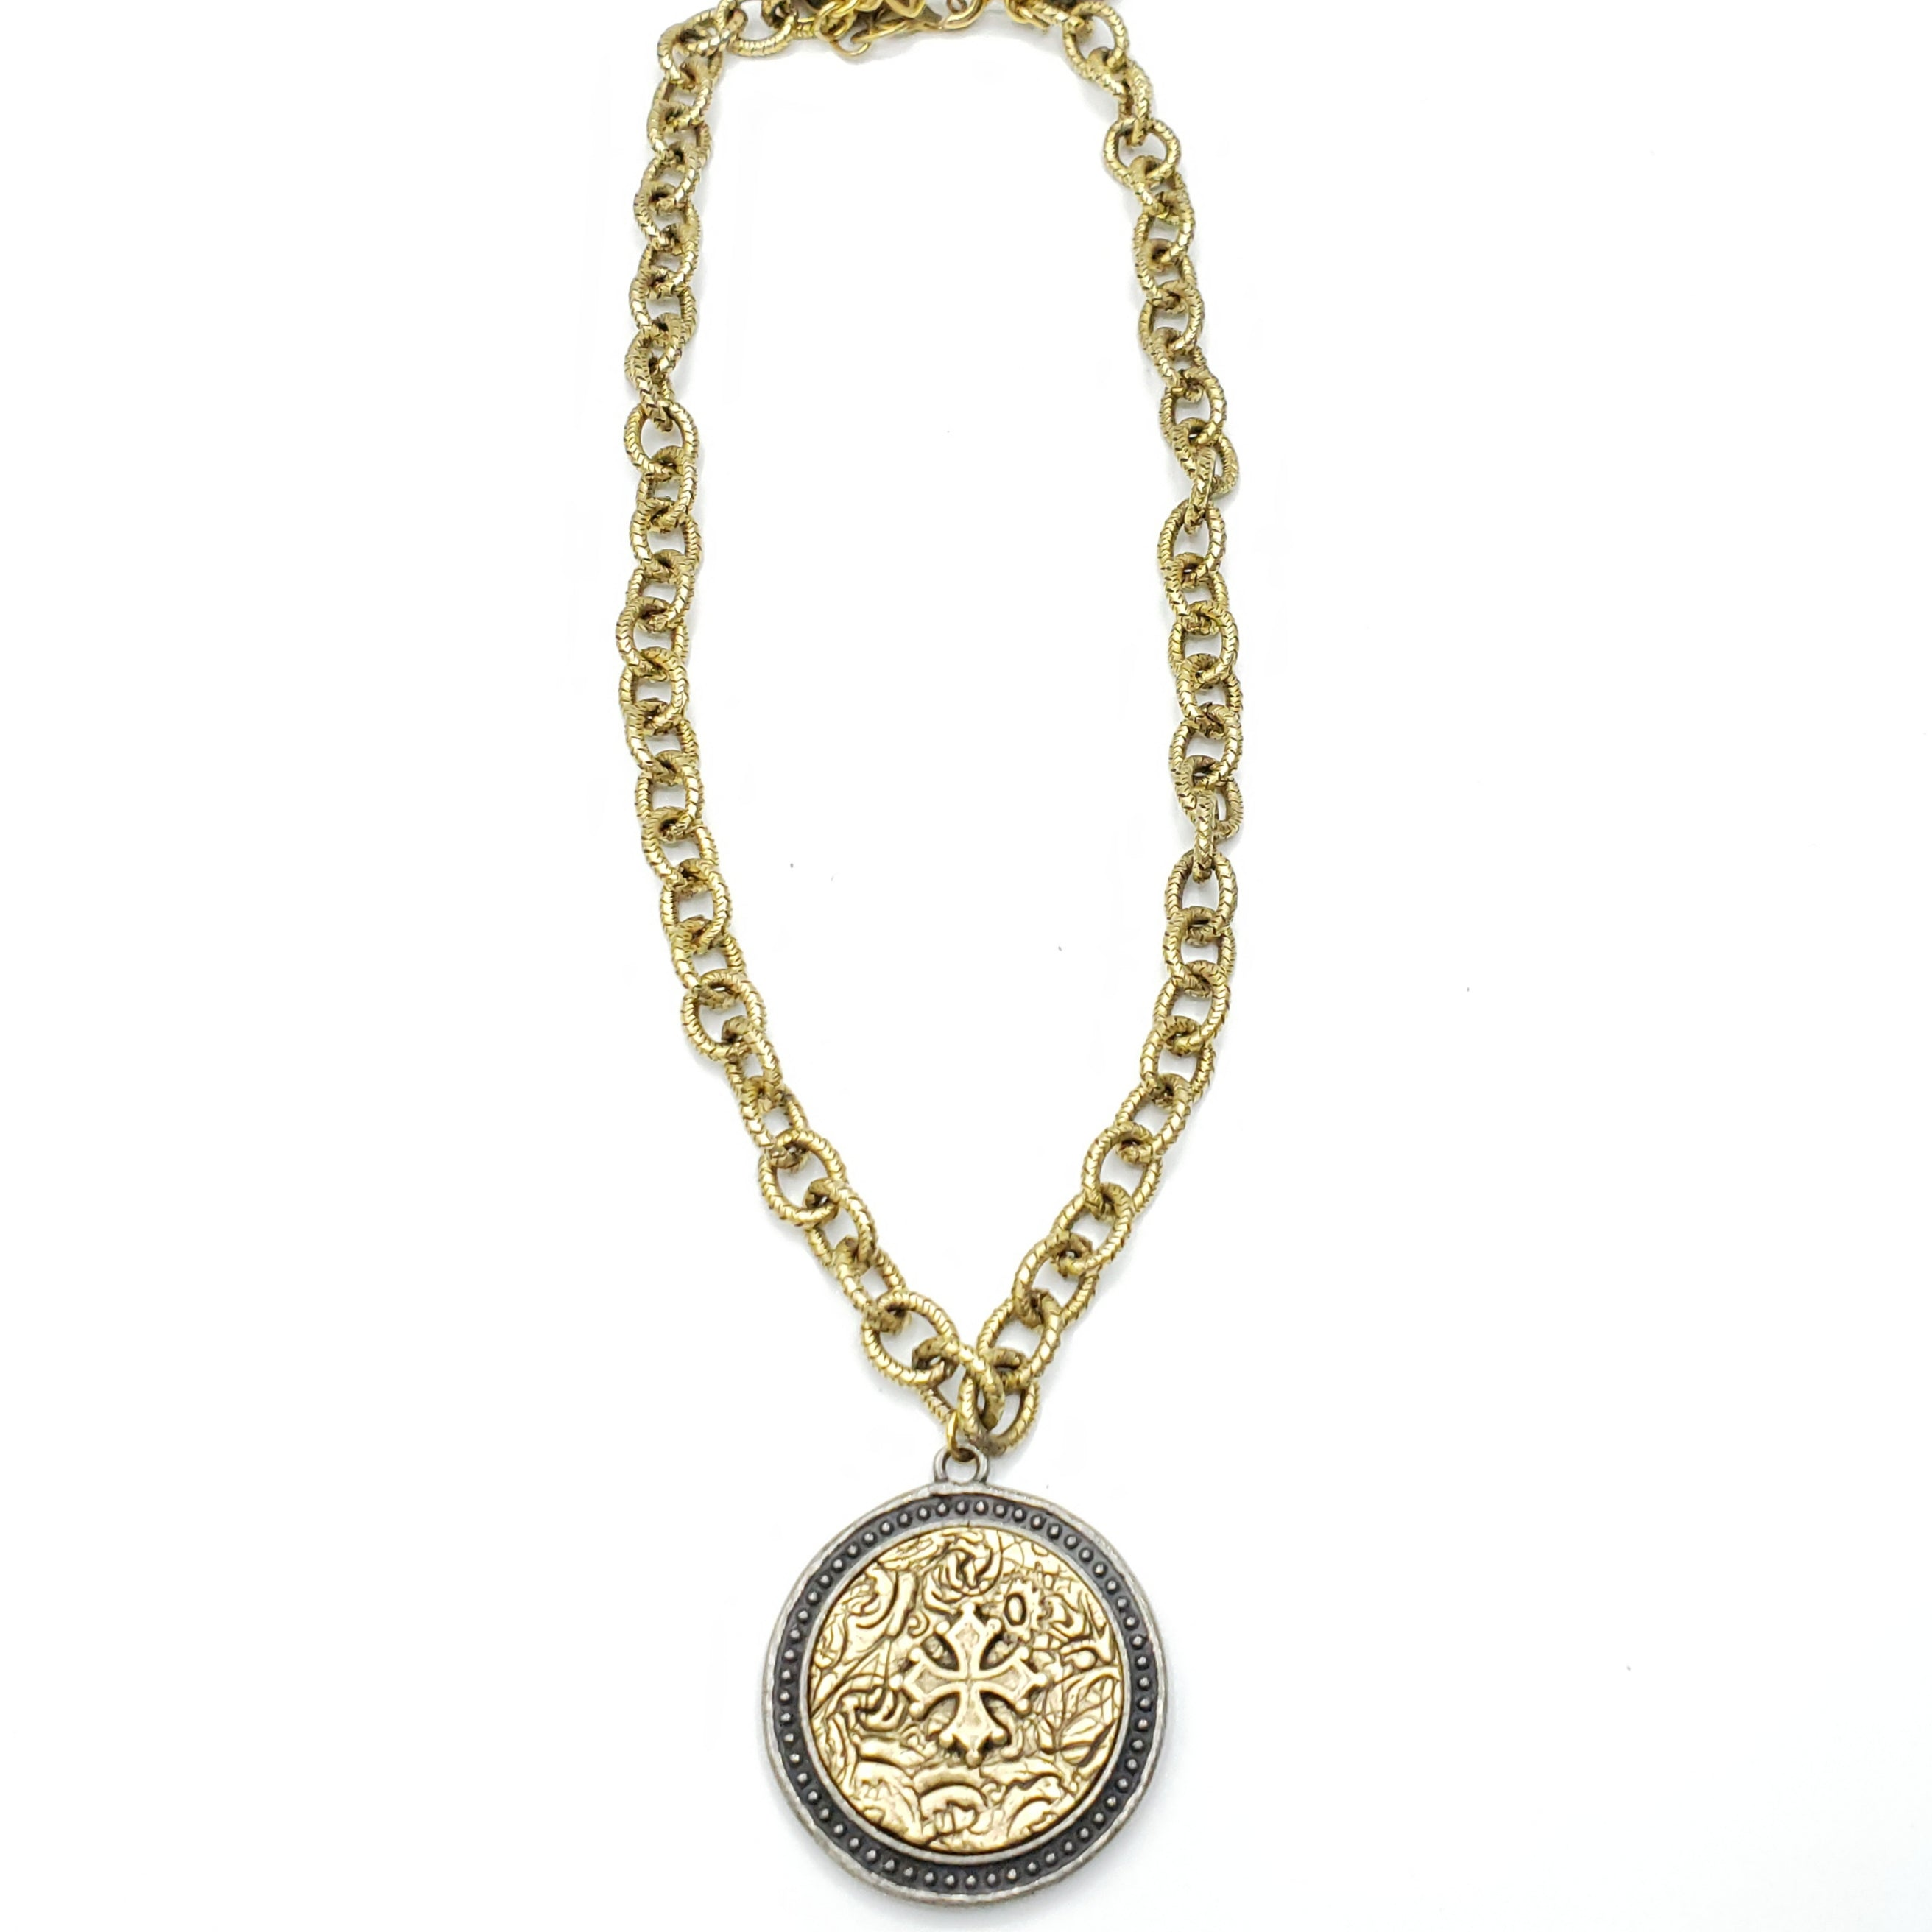 Queen Esther Chain Necklace